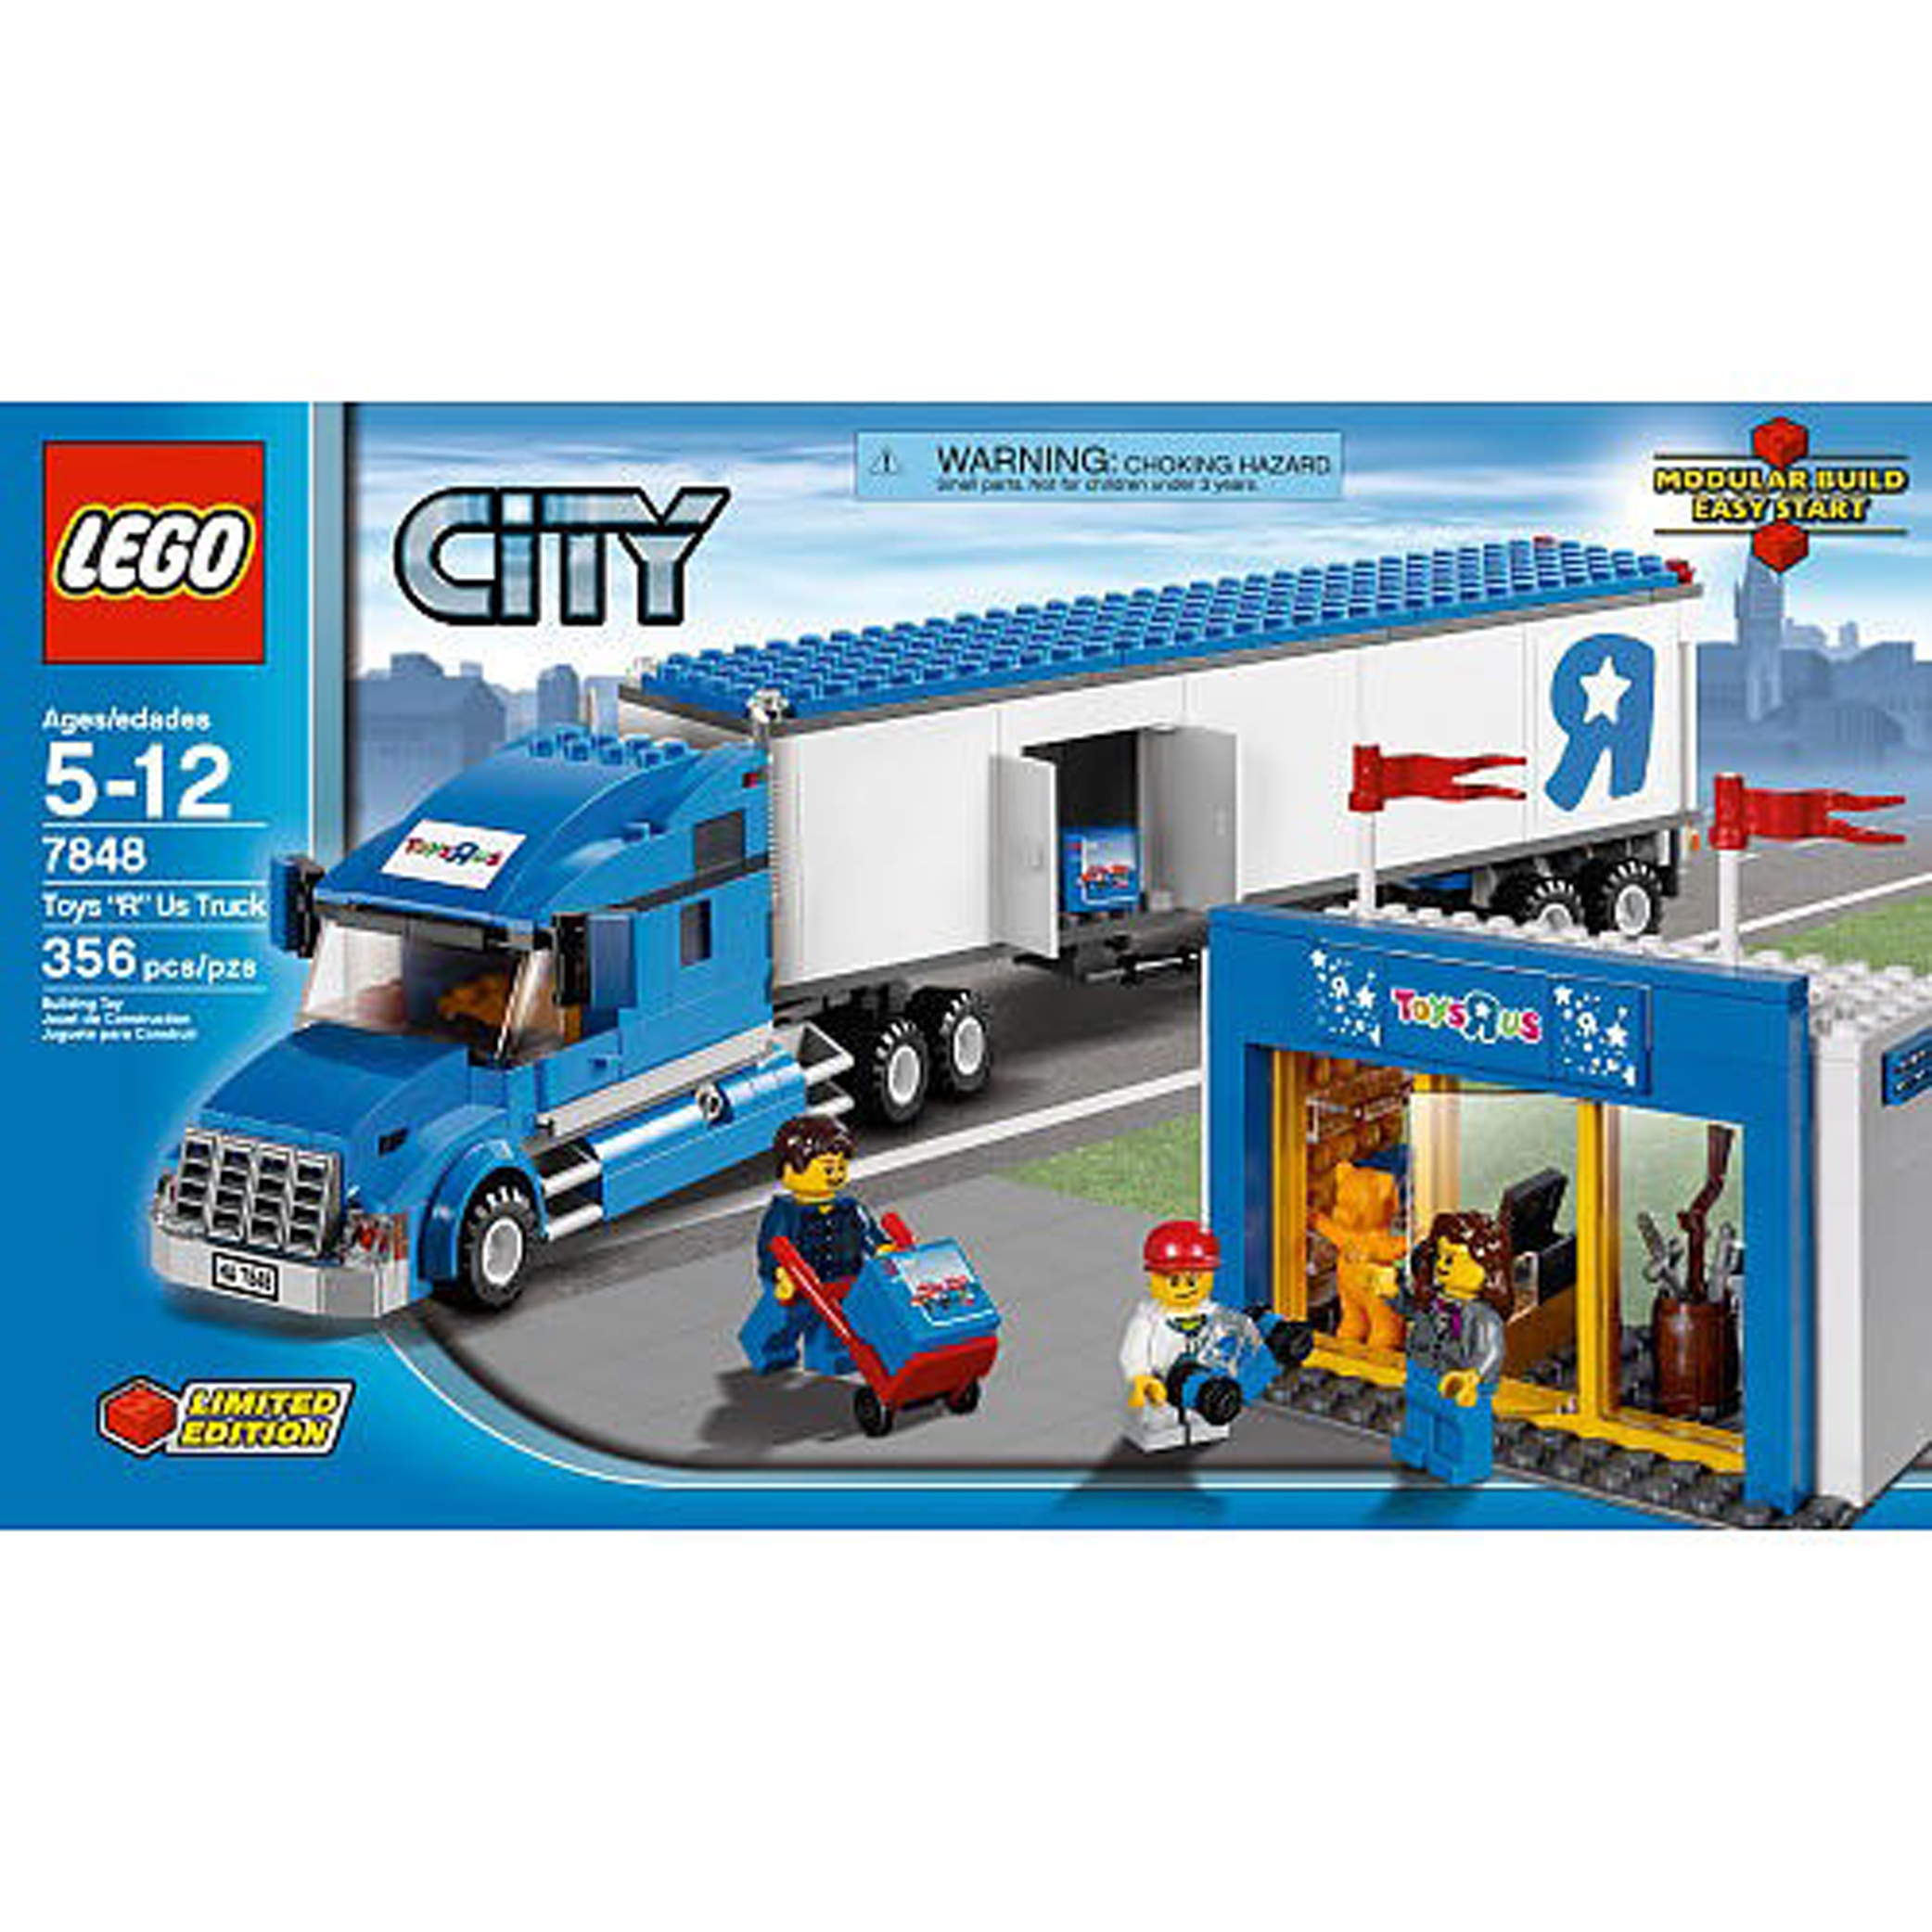 lego city toys r us truck 7848 review